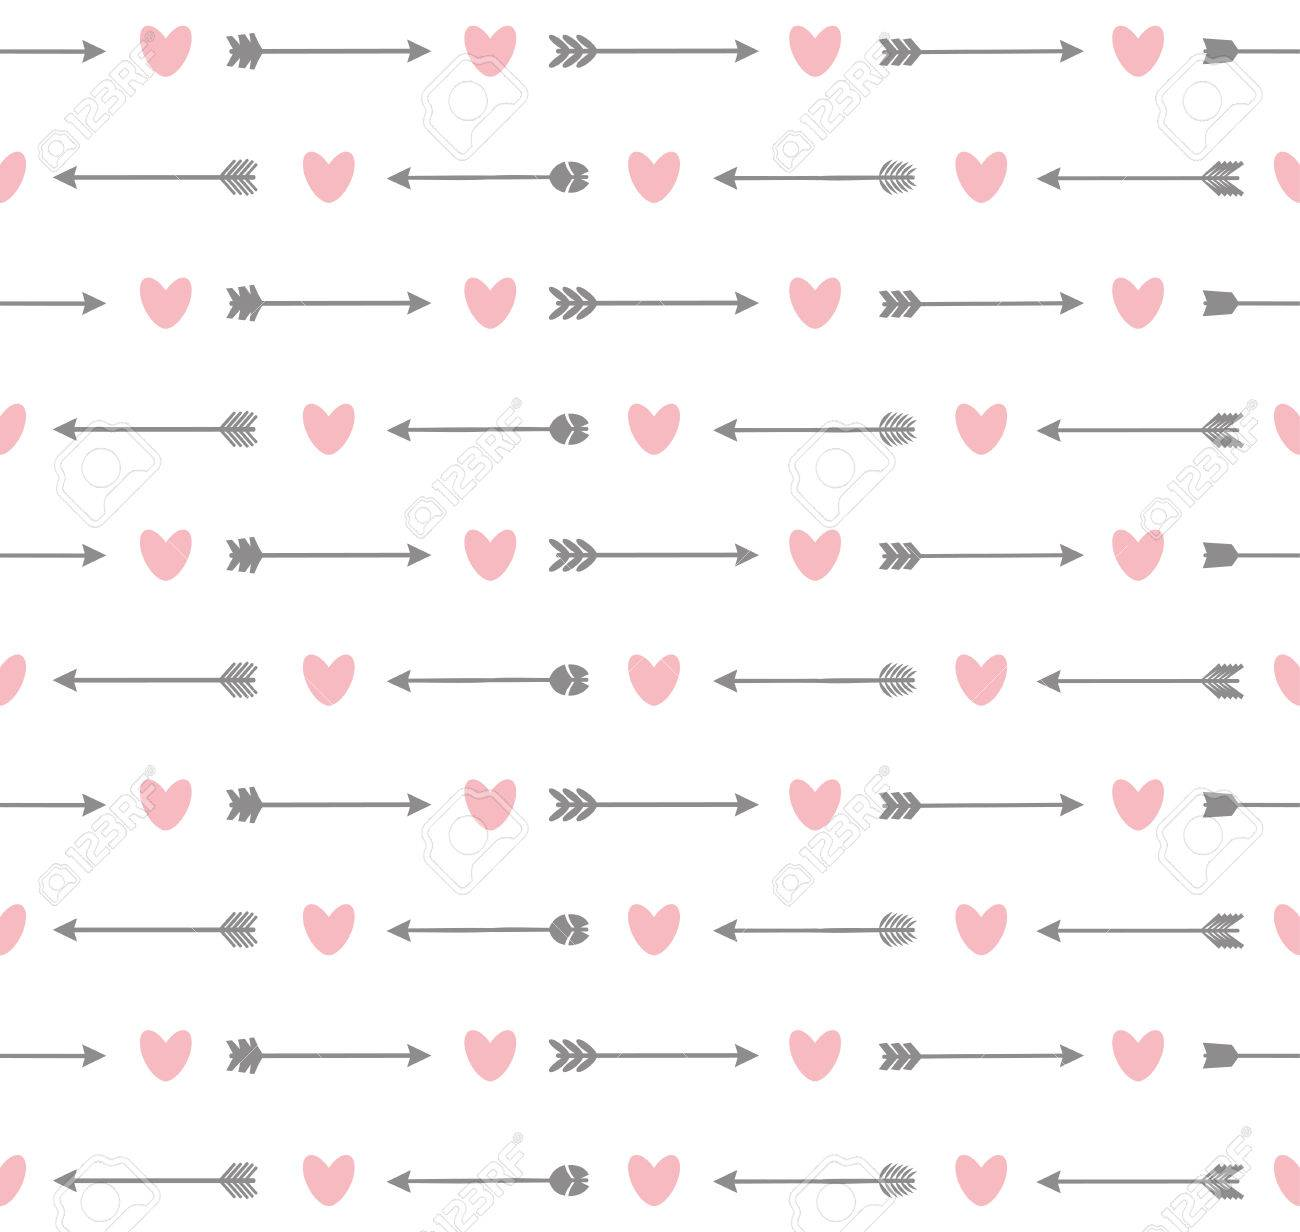 Cute seamless pattern with arrows and hearts - 56917767